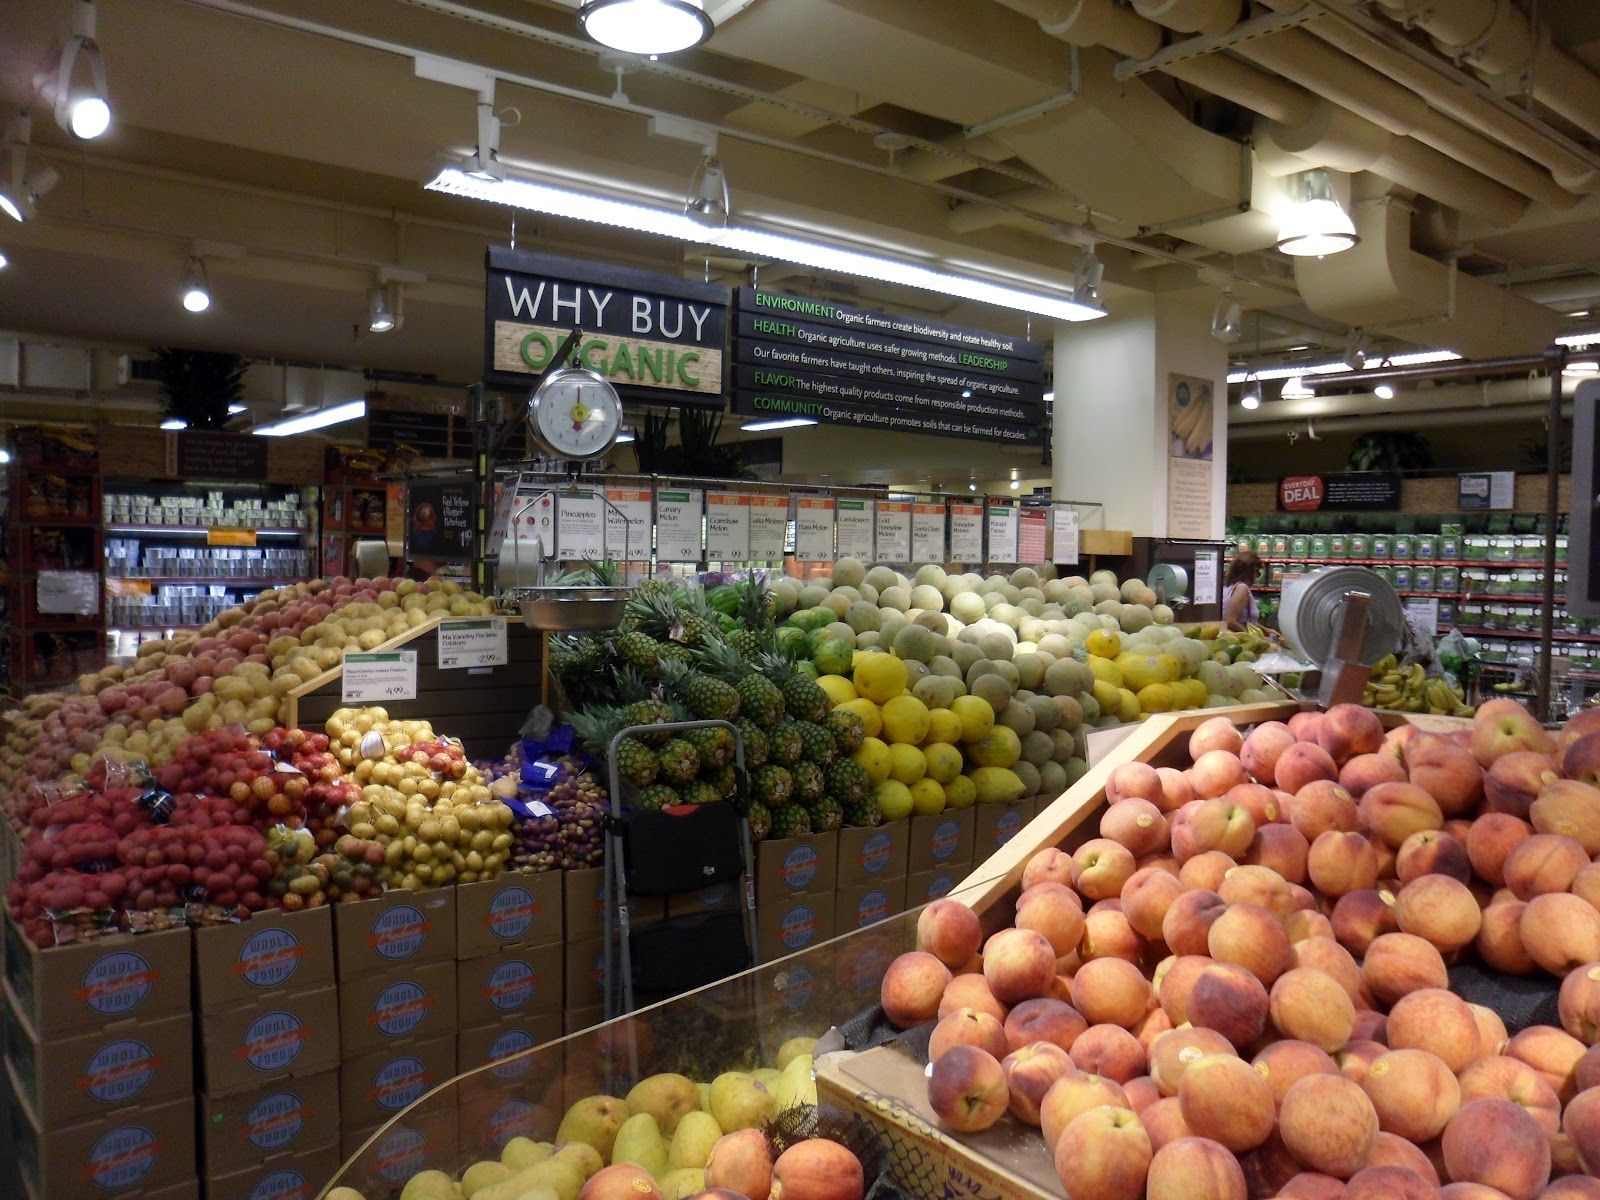 whole foods market, inc. essay The customer team at whole foods market wants to hear from you we want to satisfy and delight our customers every day get in touch here.